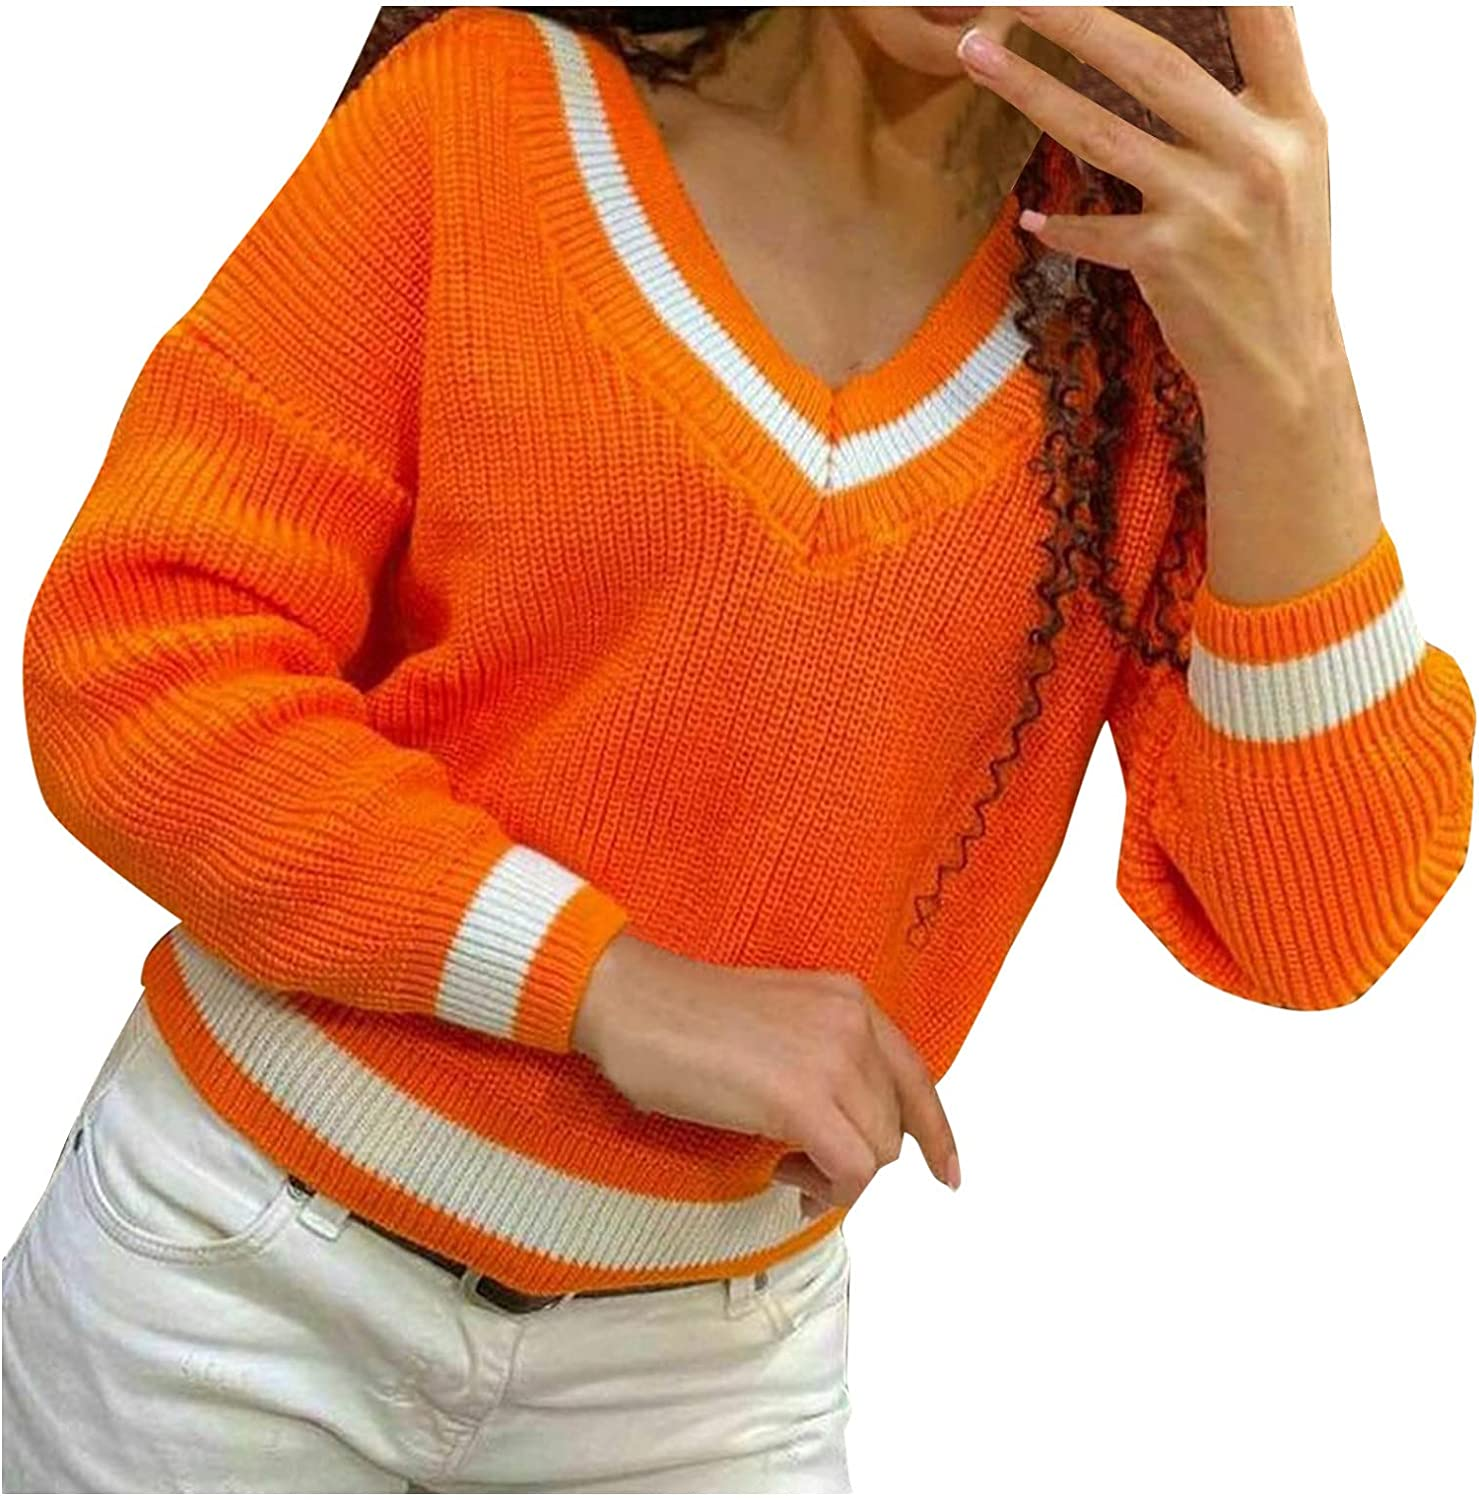 Women's Long Sleeve Oversized V Neck Short Sweater Casual Loose Color Block Patchwork Crochet Knitted Pullover Jumpers Top